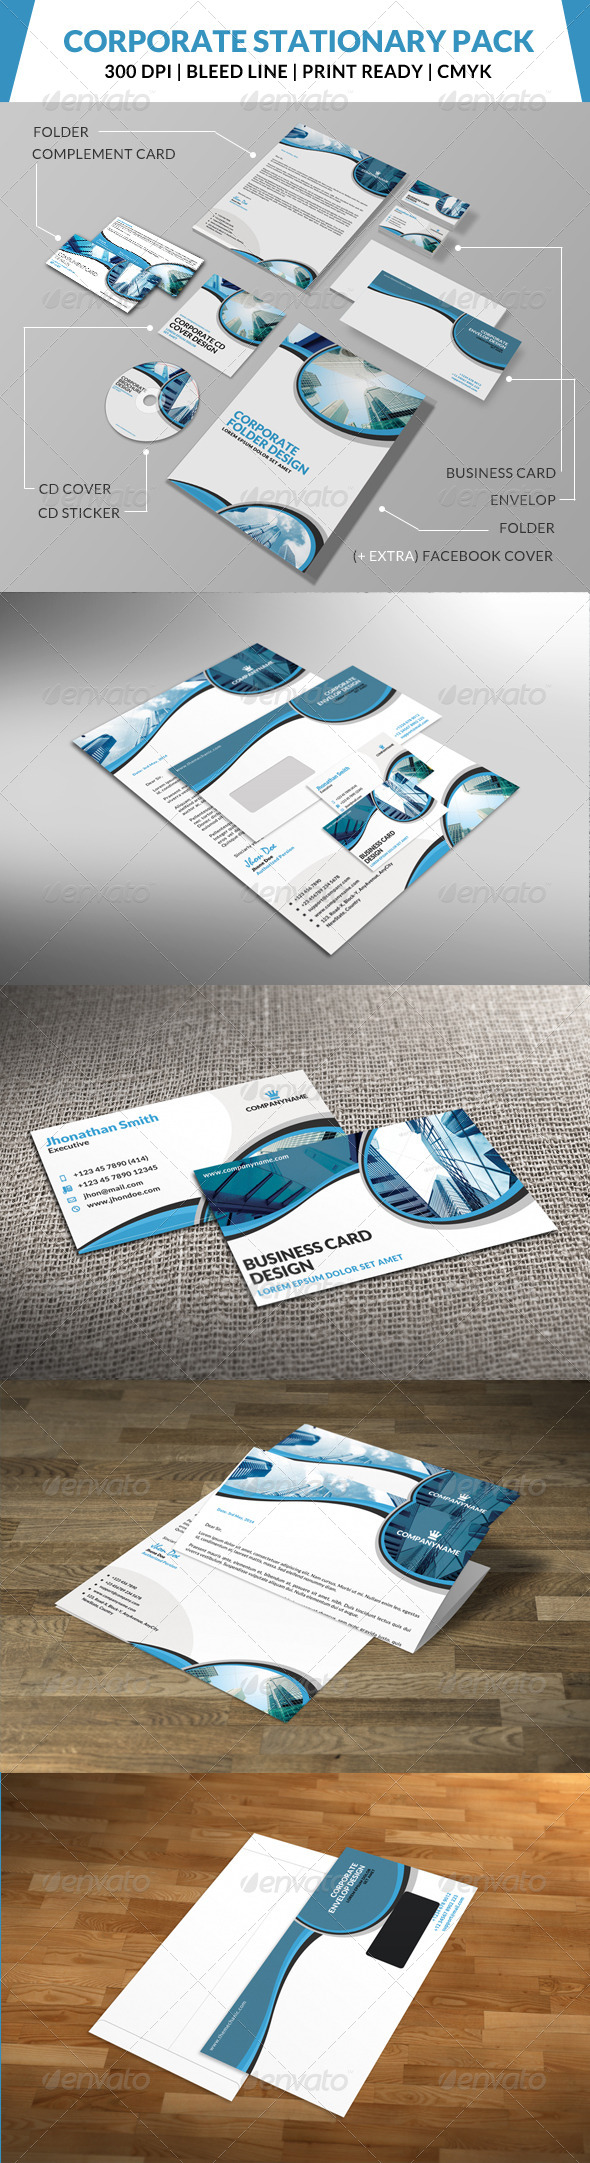 GraphicRiver Corporate Stationary Pack 4 8469264